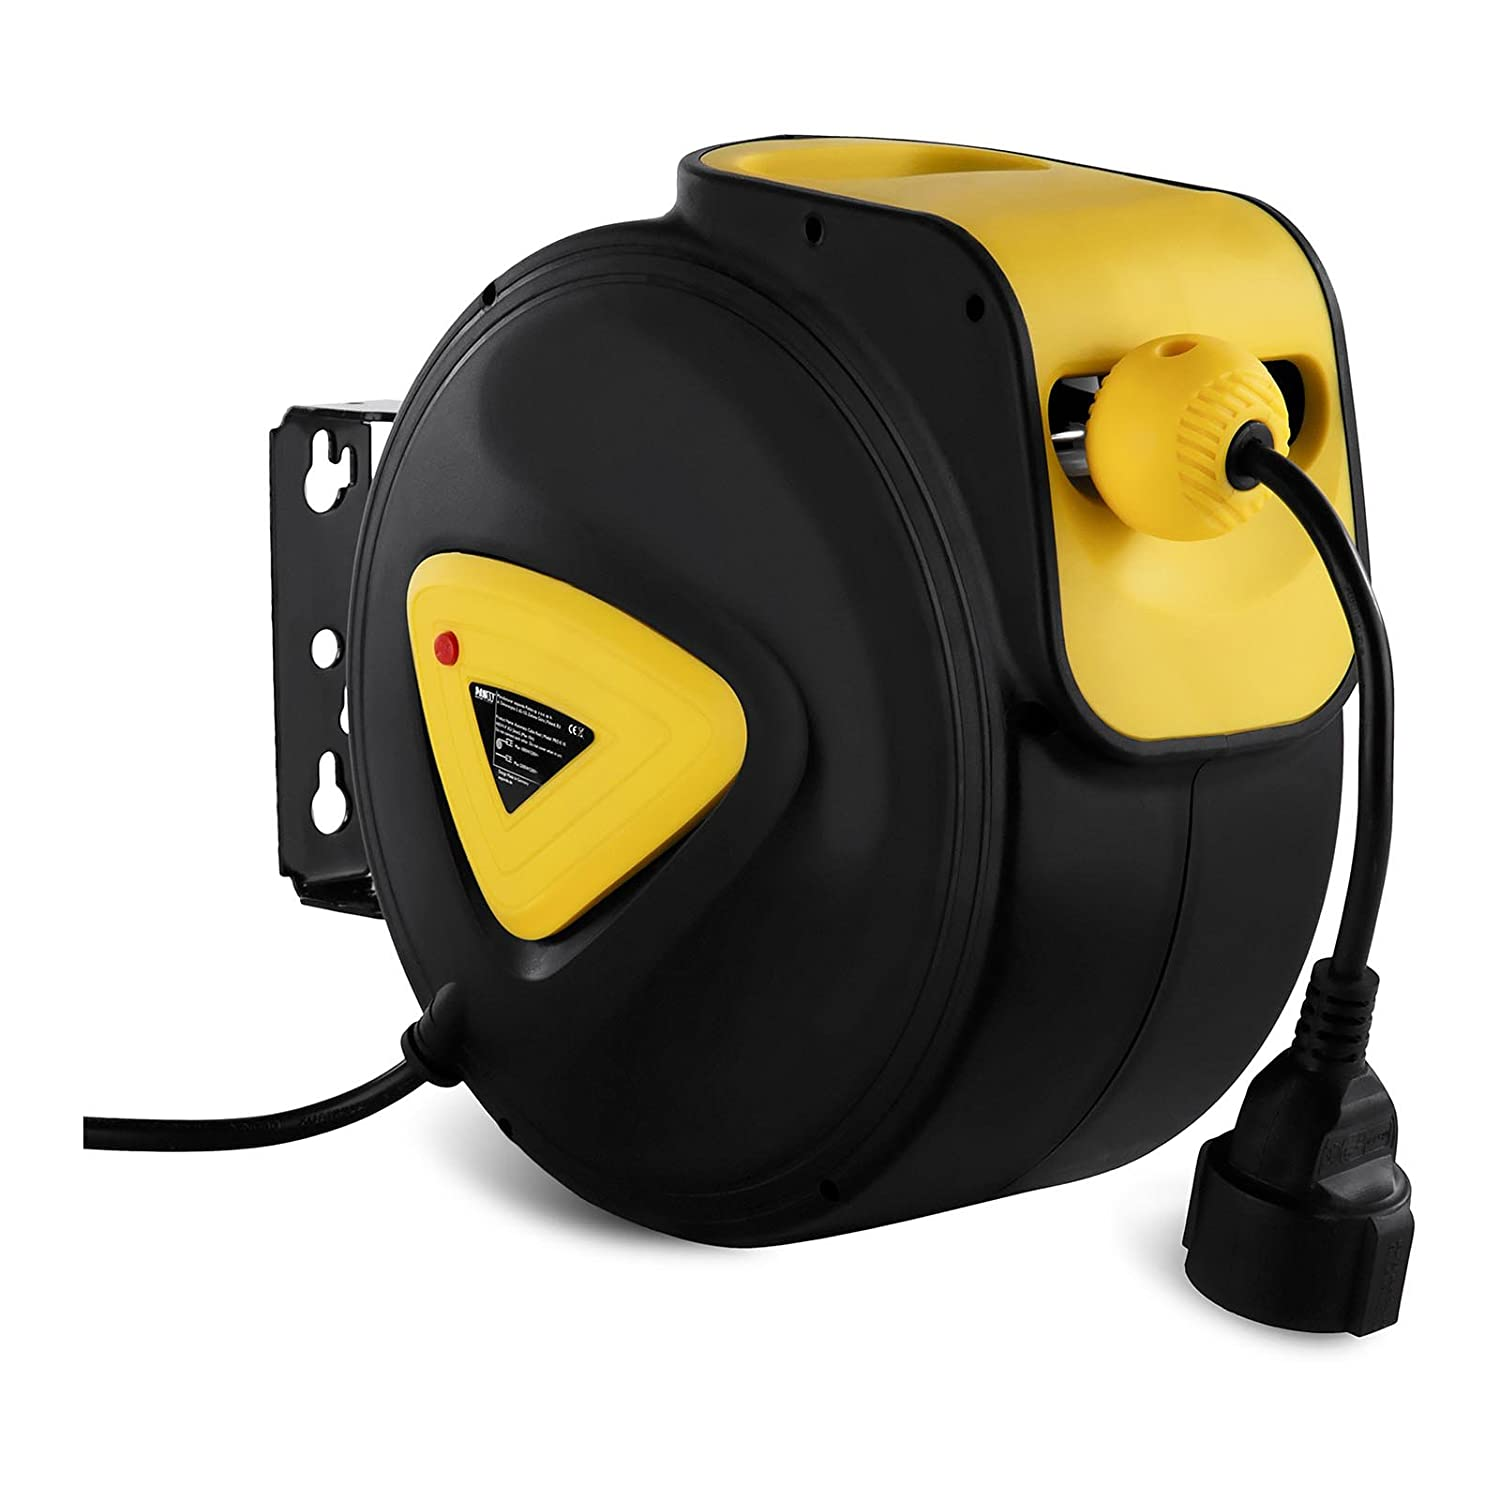 MSW Retractable Cable Reel Cord Roll-Up PRO-E 20 (20 m + 1,5 m, Intuitive Fastening of The Cable Length, Max Output, Rolled Out 2.300 W) MSW Motor Technics